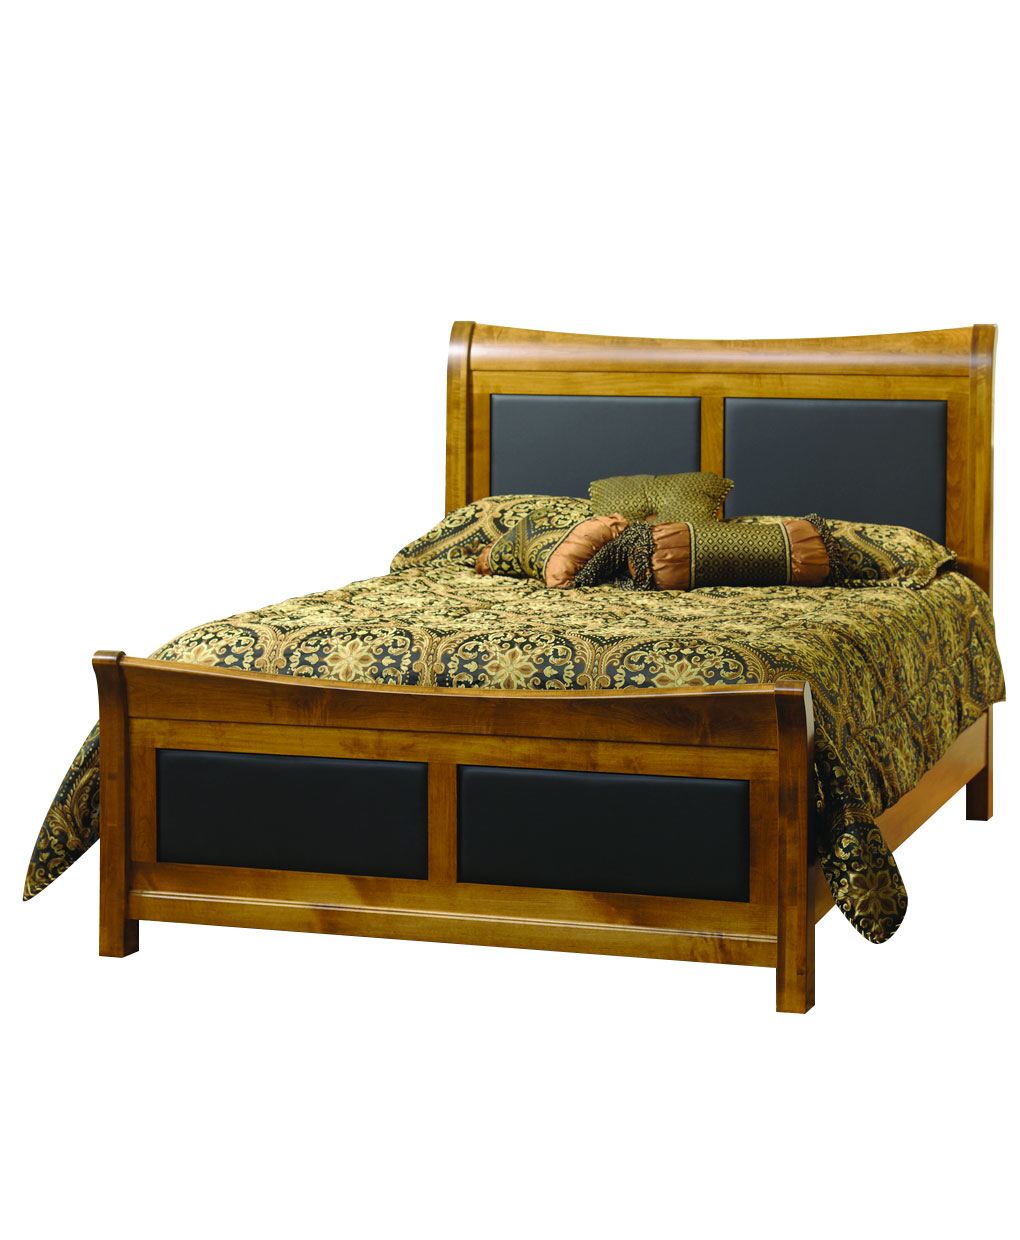 Stratford bed amish direct furniture for Bedroom 80 humidity